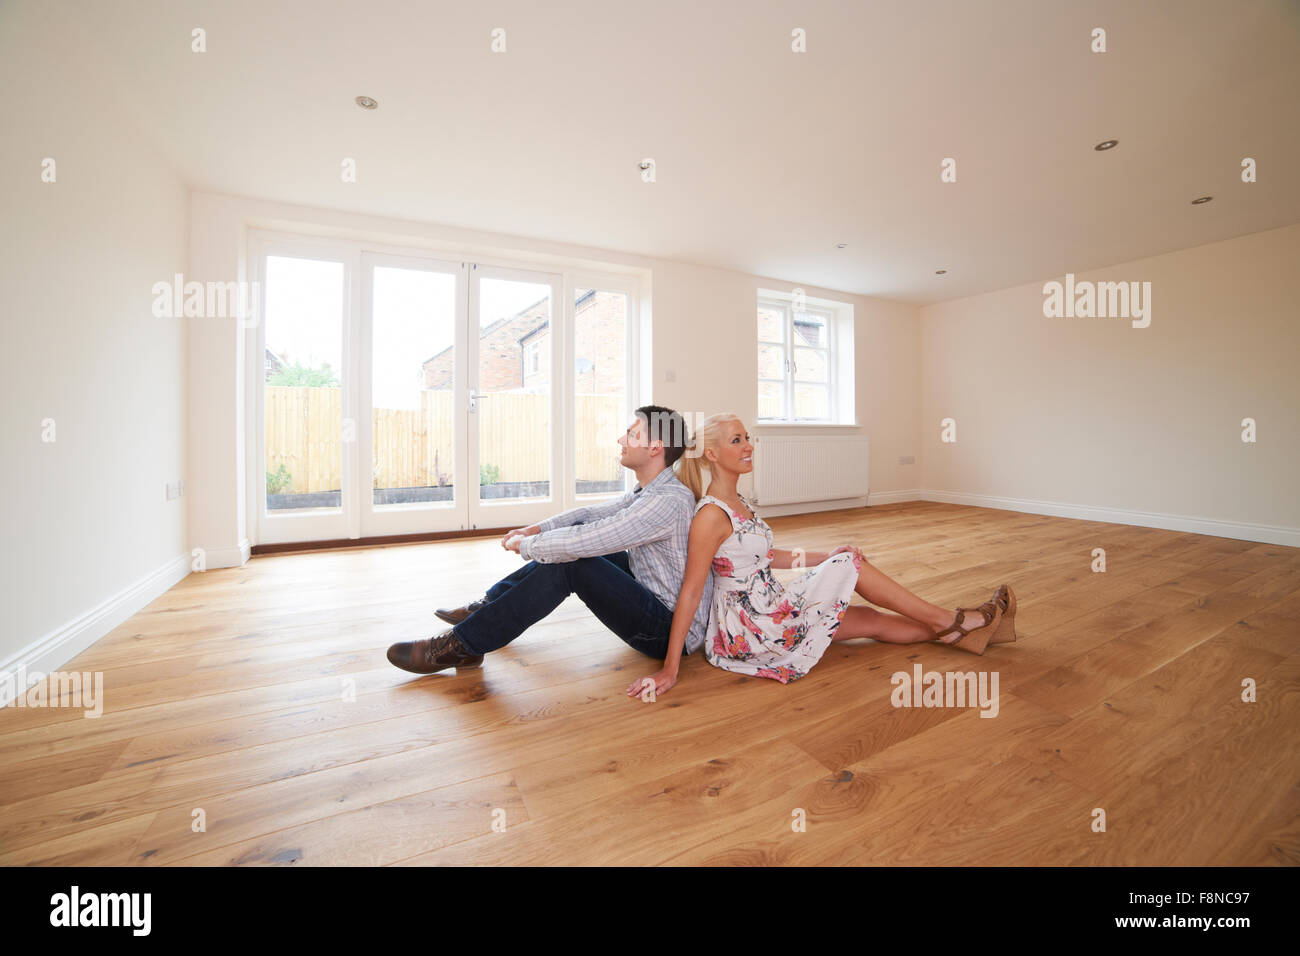 Young Couple Sitting in Empty Room de Dream House Photo Stock